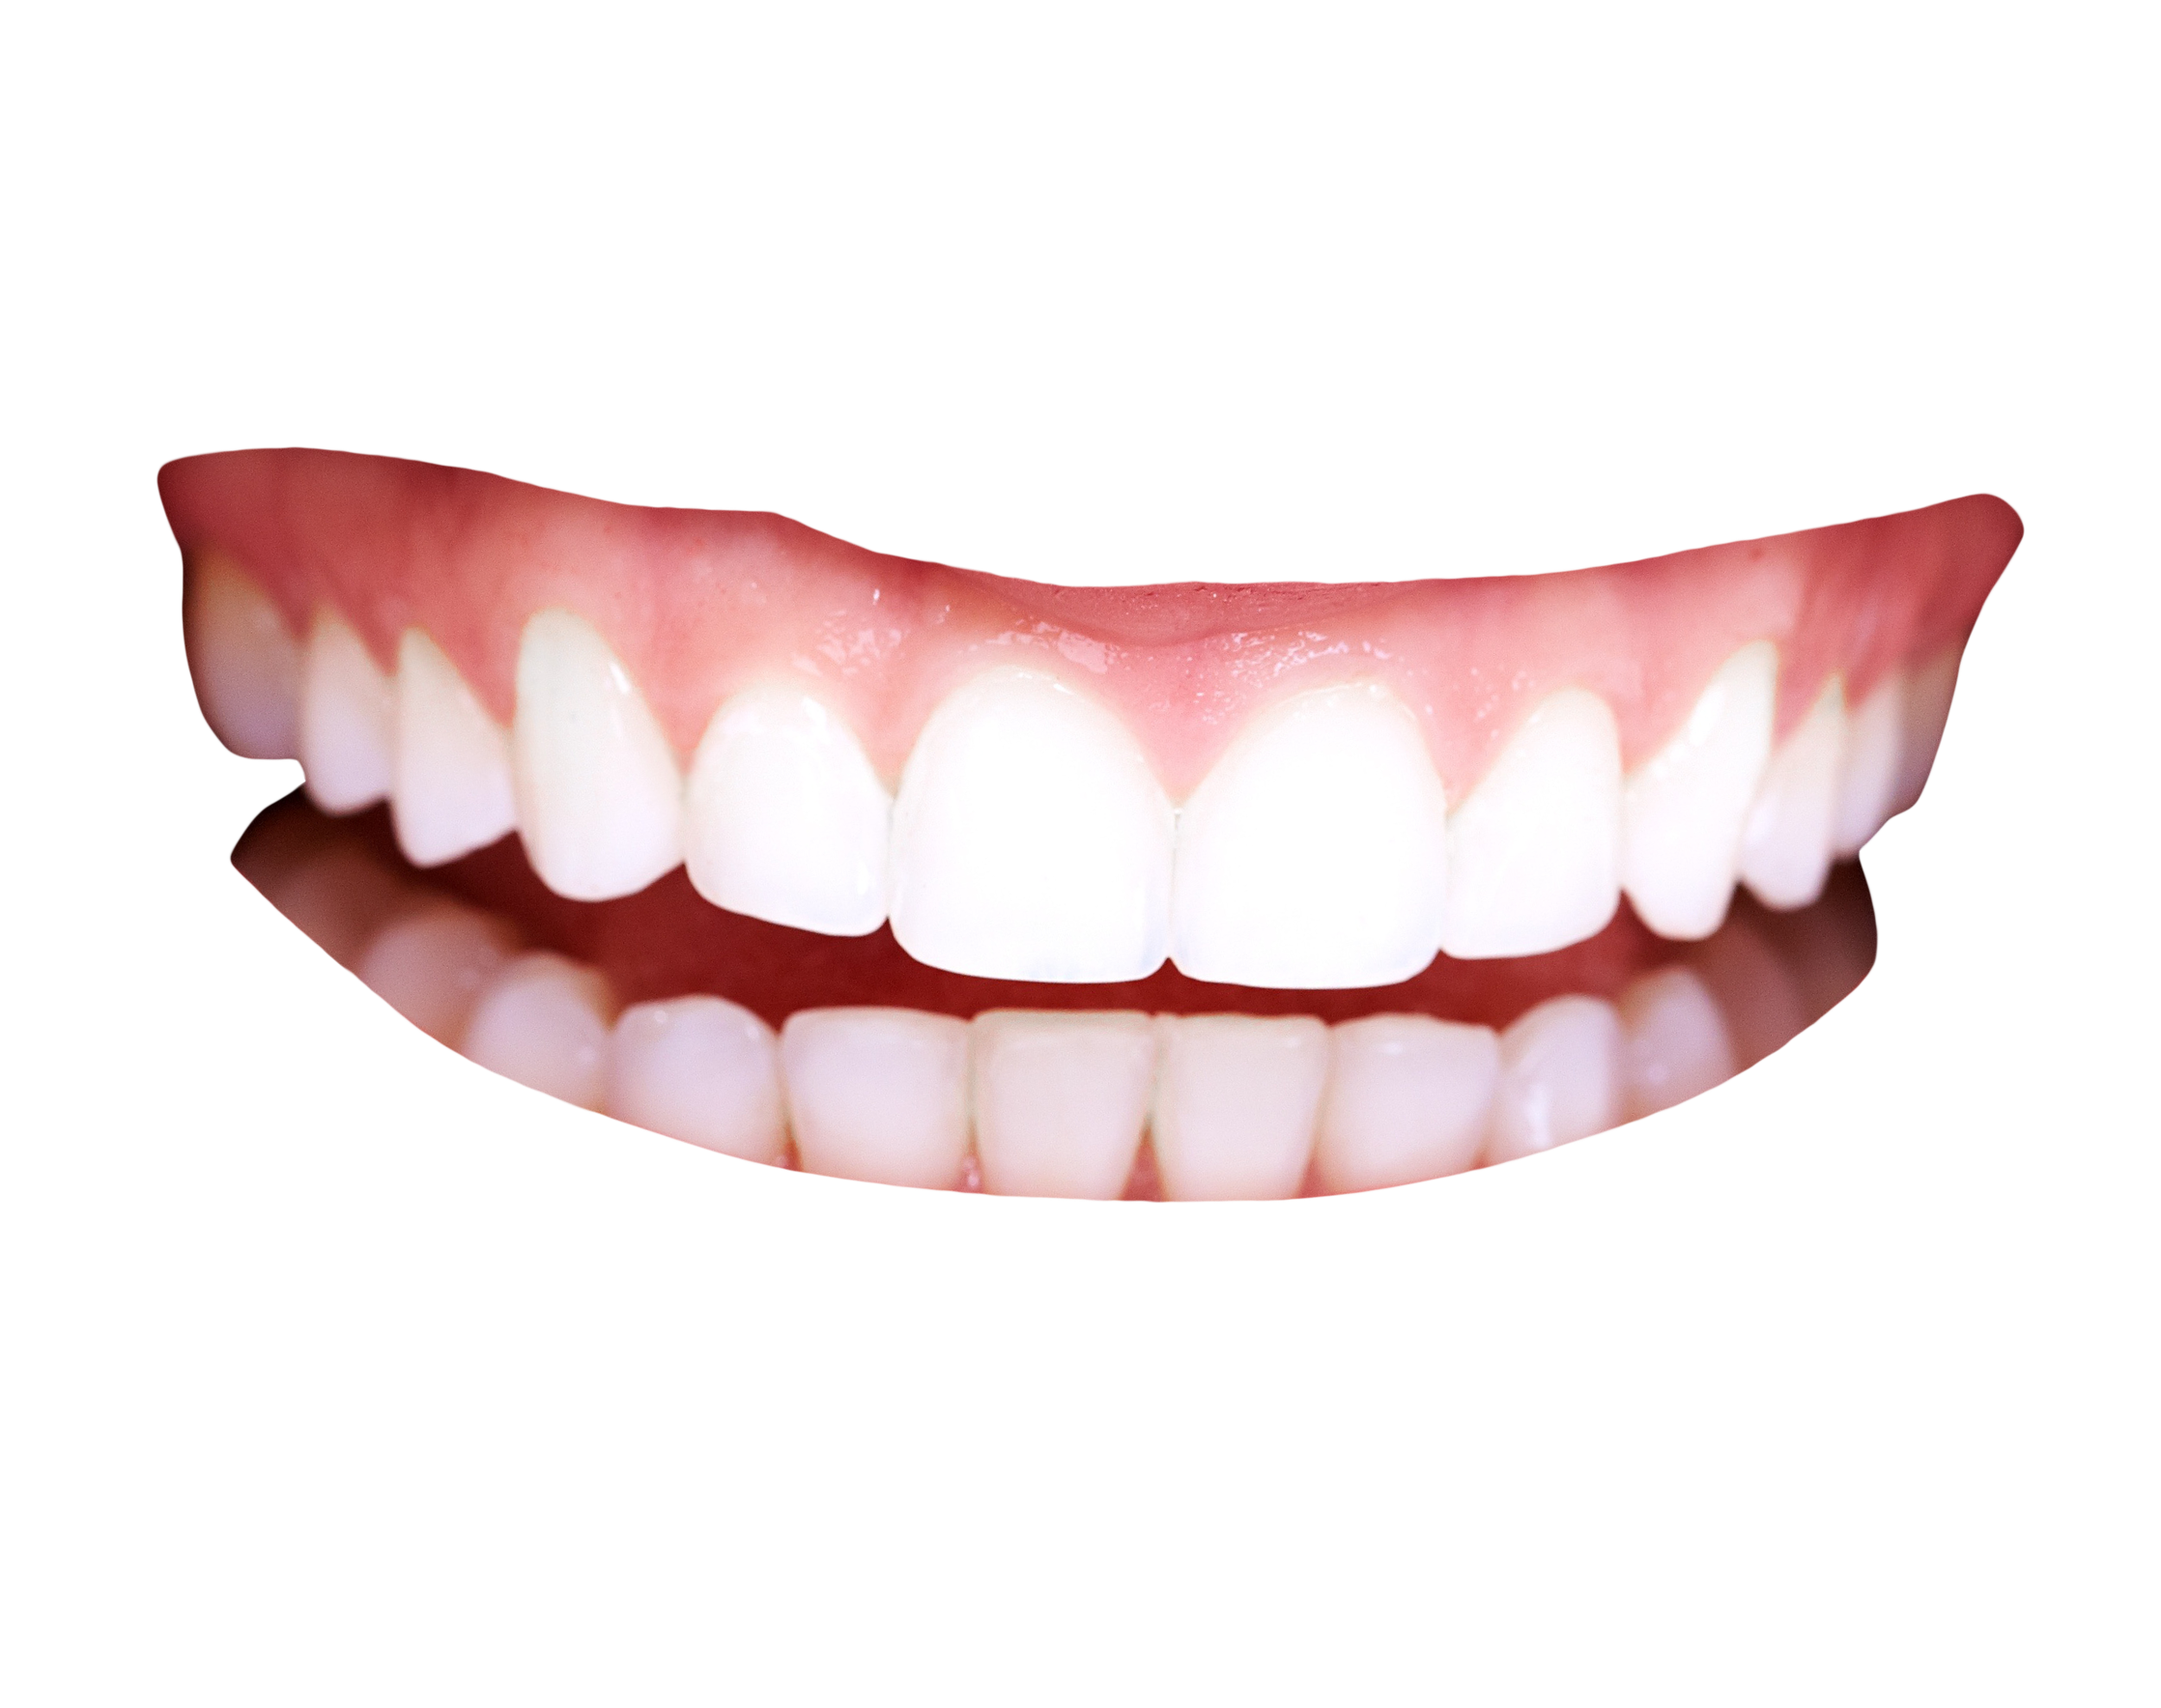 Teeth Smile Png Hd - Teeth Png Pluspng Pluspng.com 2500   Teeth Png, Transparent background PNG HD thumbnail